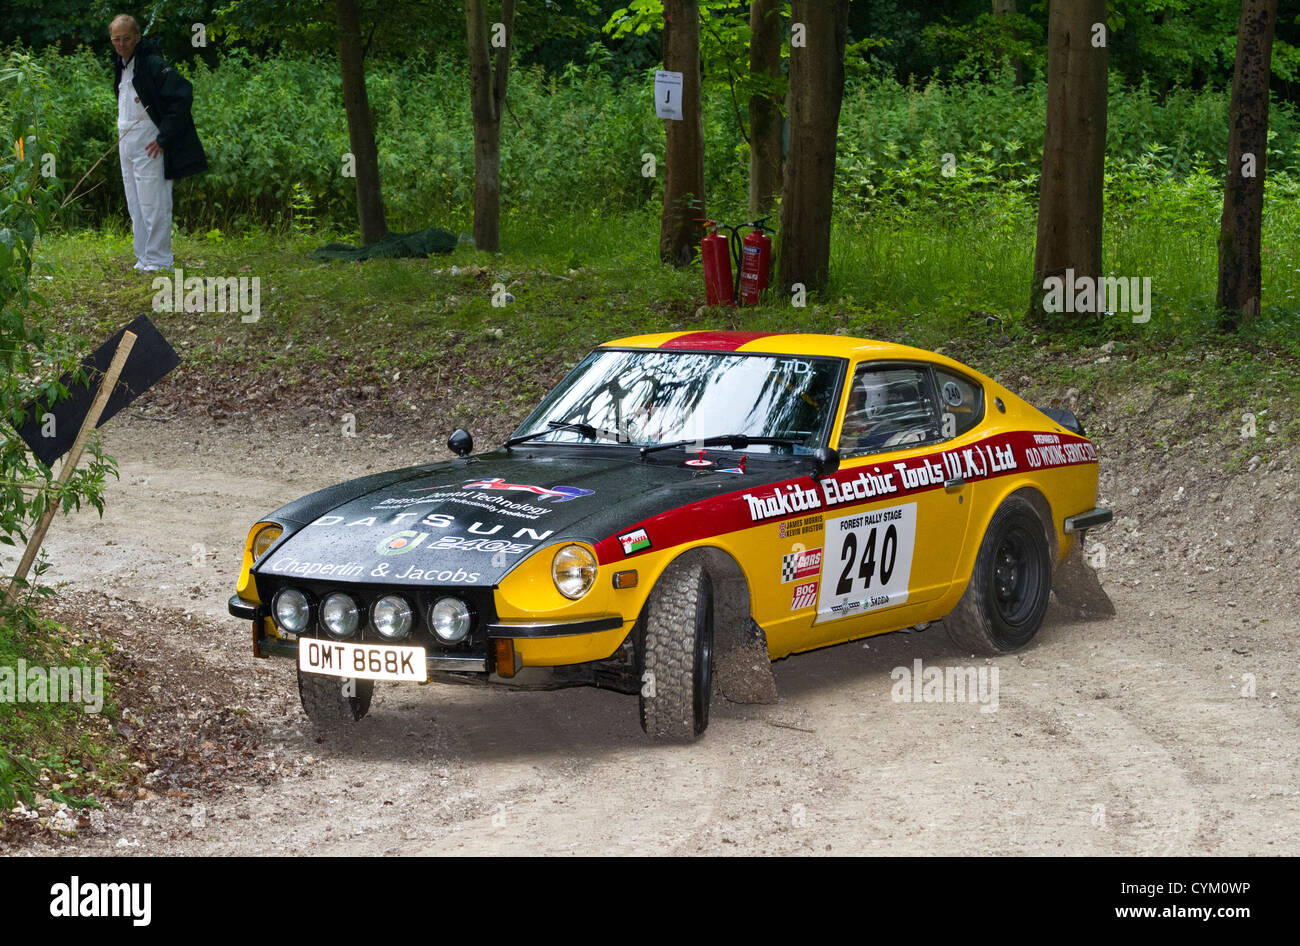 Datsun 240z stock photos datsun 240z stock images alamy 1972 datsun 240z with driver kevin bristow at the 2012 goodwood festival of speed sussex vanachro Gallery